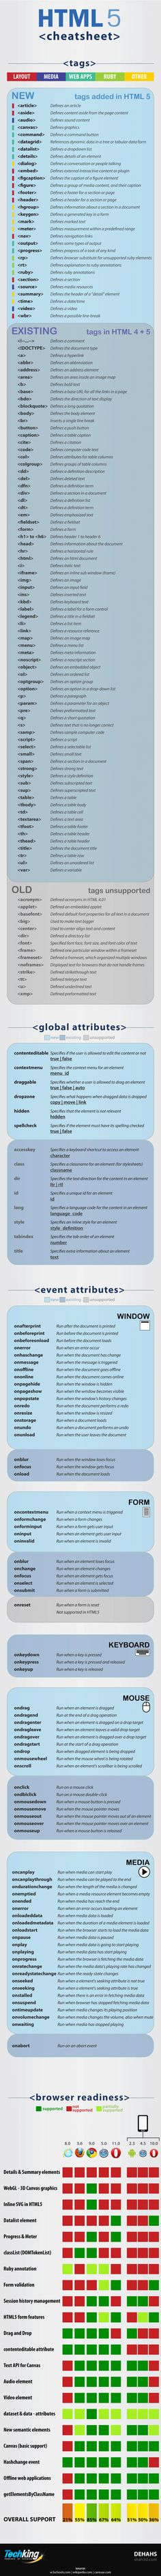 HTML quick reference sheet